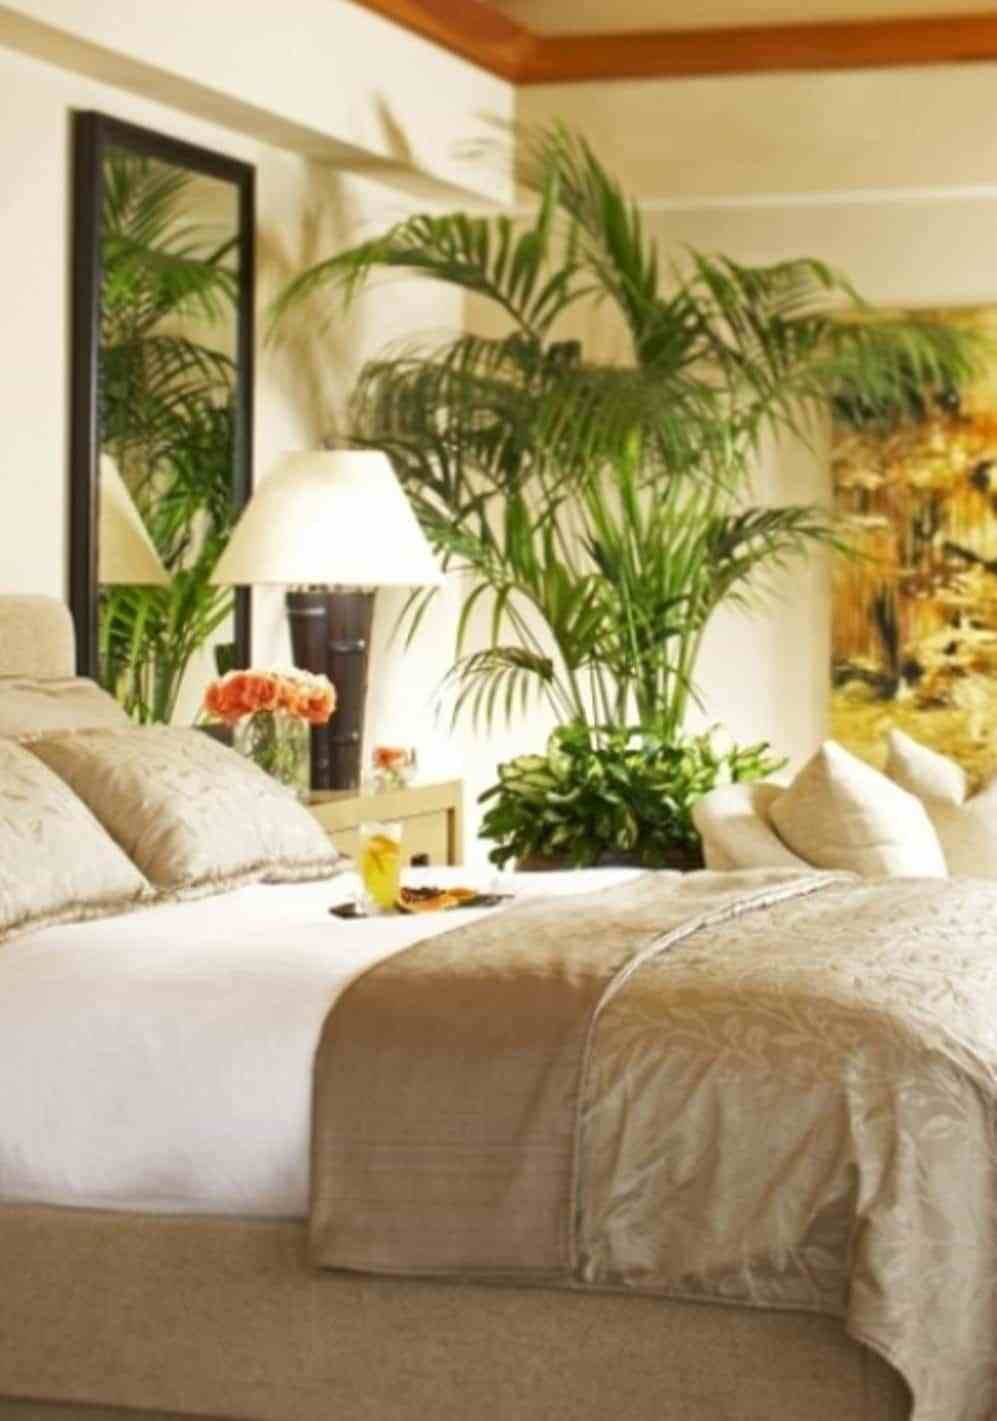 Best Bright Tropical Bedroom With Wall Mirror And Palm Tree Houseplant Making A Paradise With With Pictures